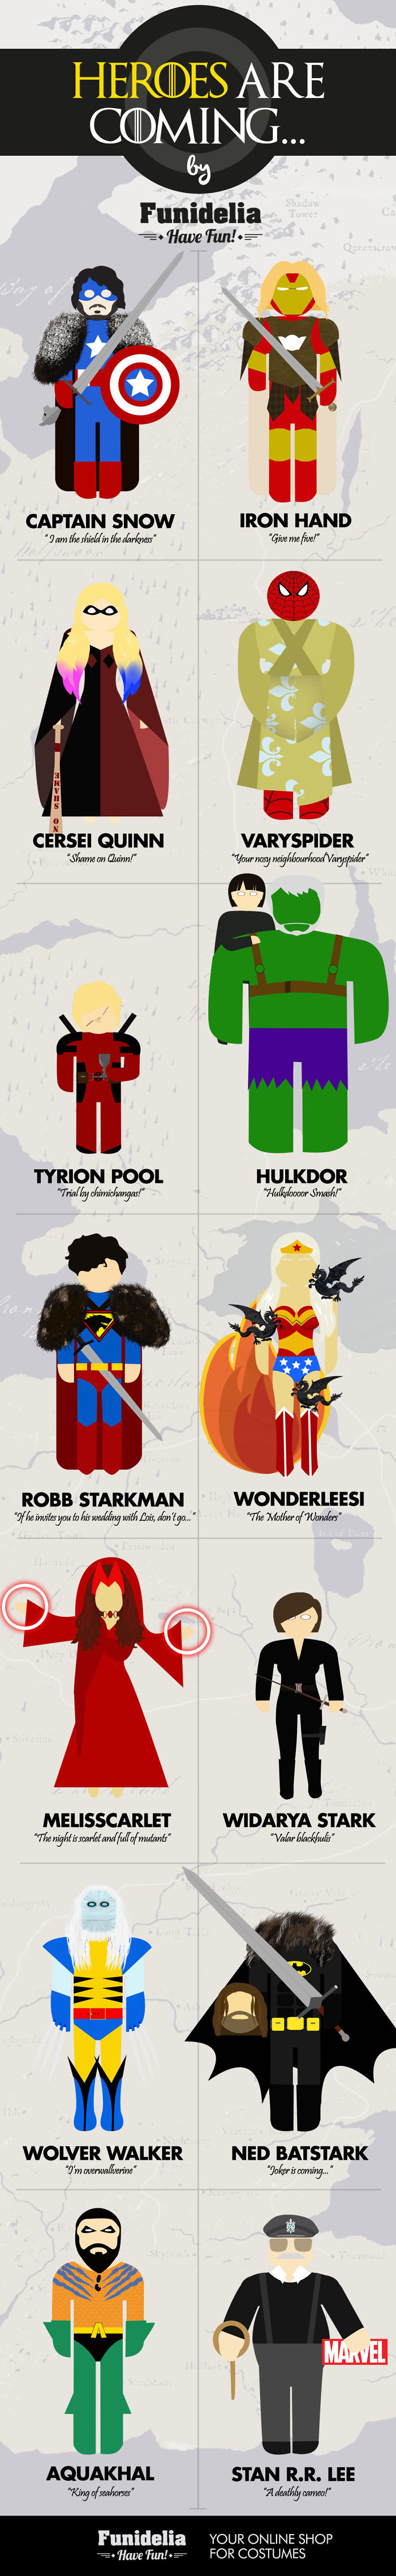 Heroes Are Coming… Superheroes As Game Of Thrones Characters!